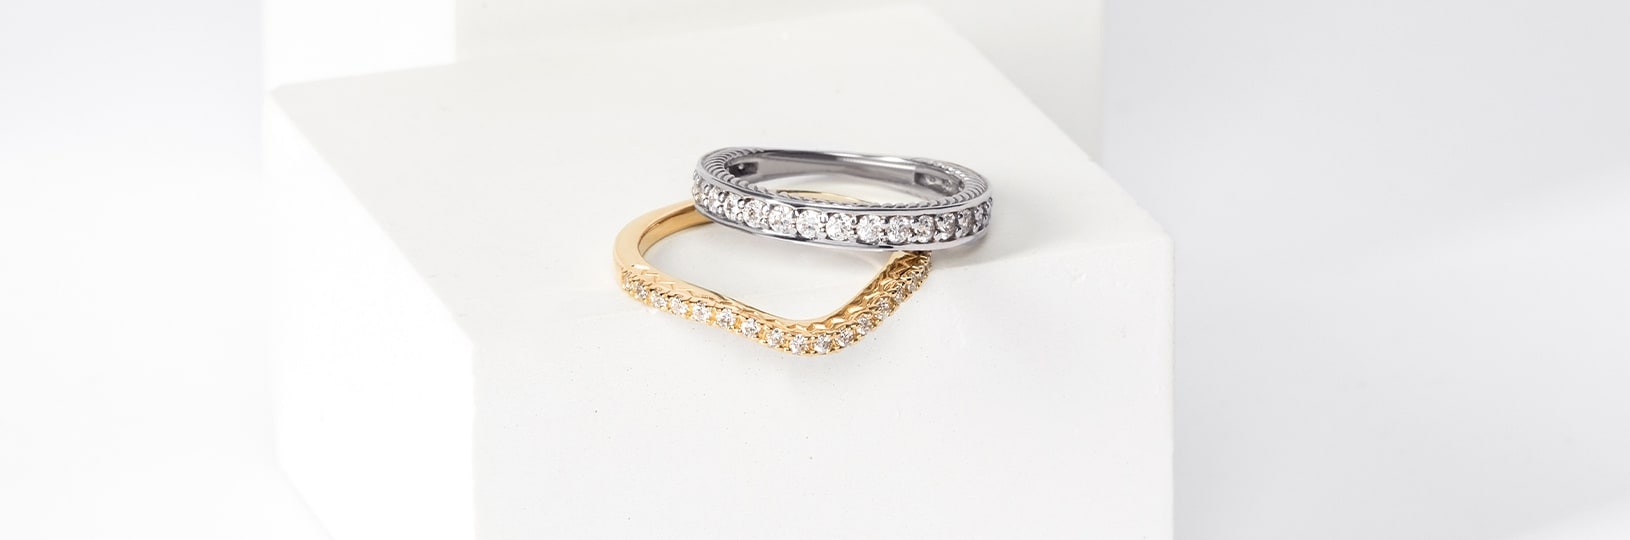 Two wedding bands, one in yellow gold, the other in white gold